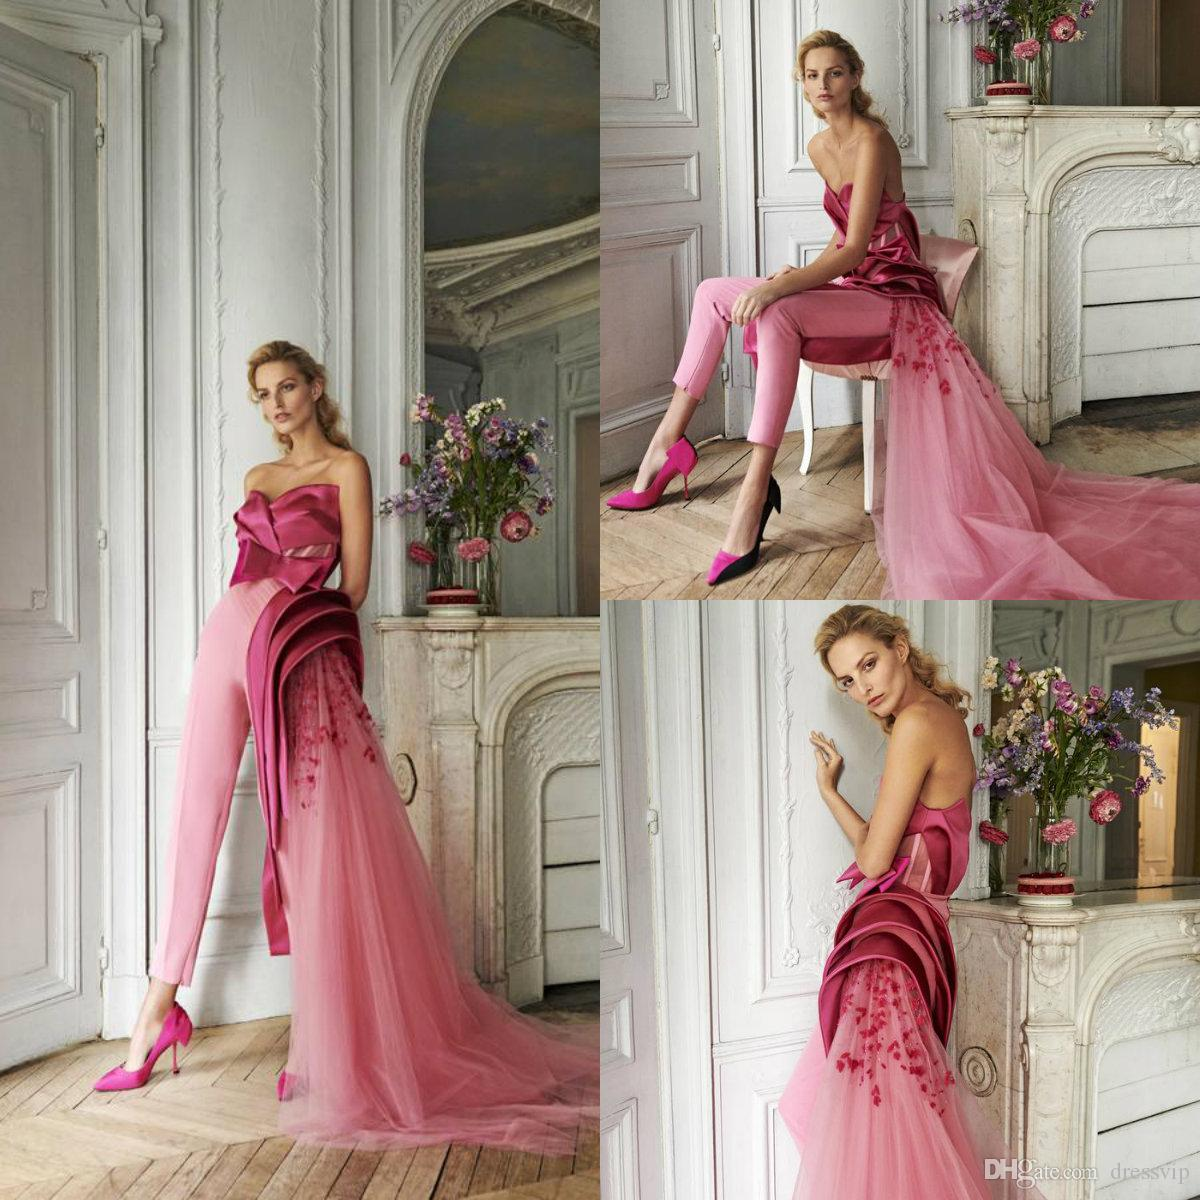 2020 Azzi&Osta Prom Jumpsuit With Sweetheat Satin Appliques Lace Evening Dresses Custom Made Pants Suit Engagement Gowns